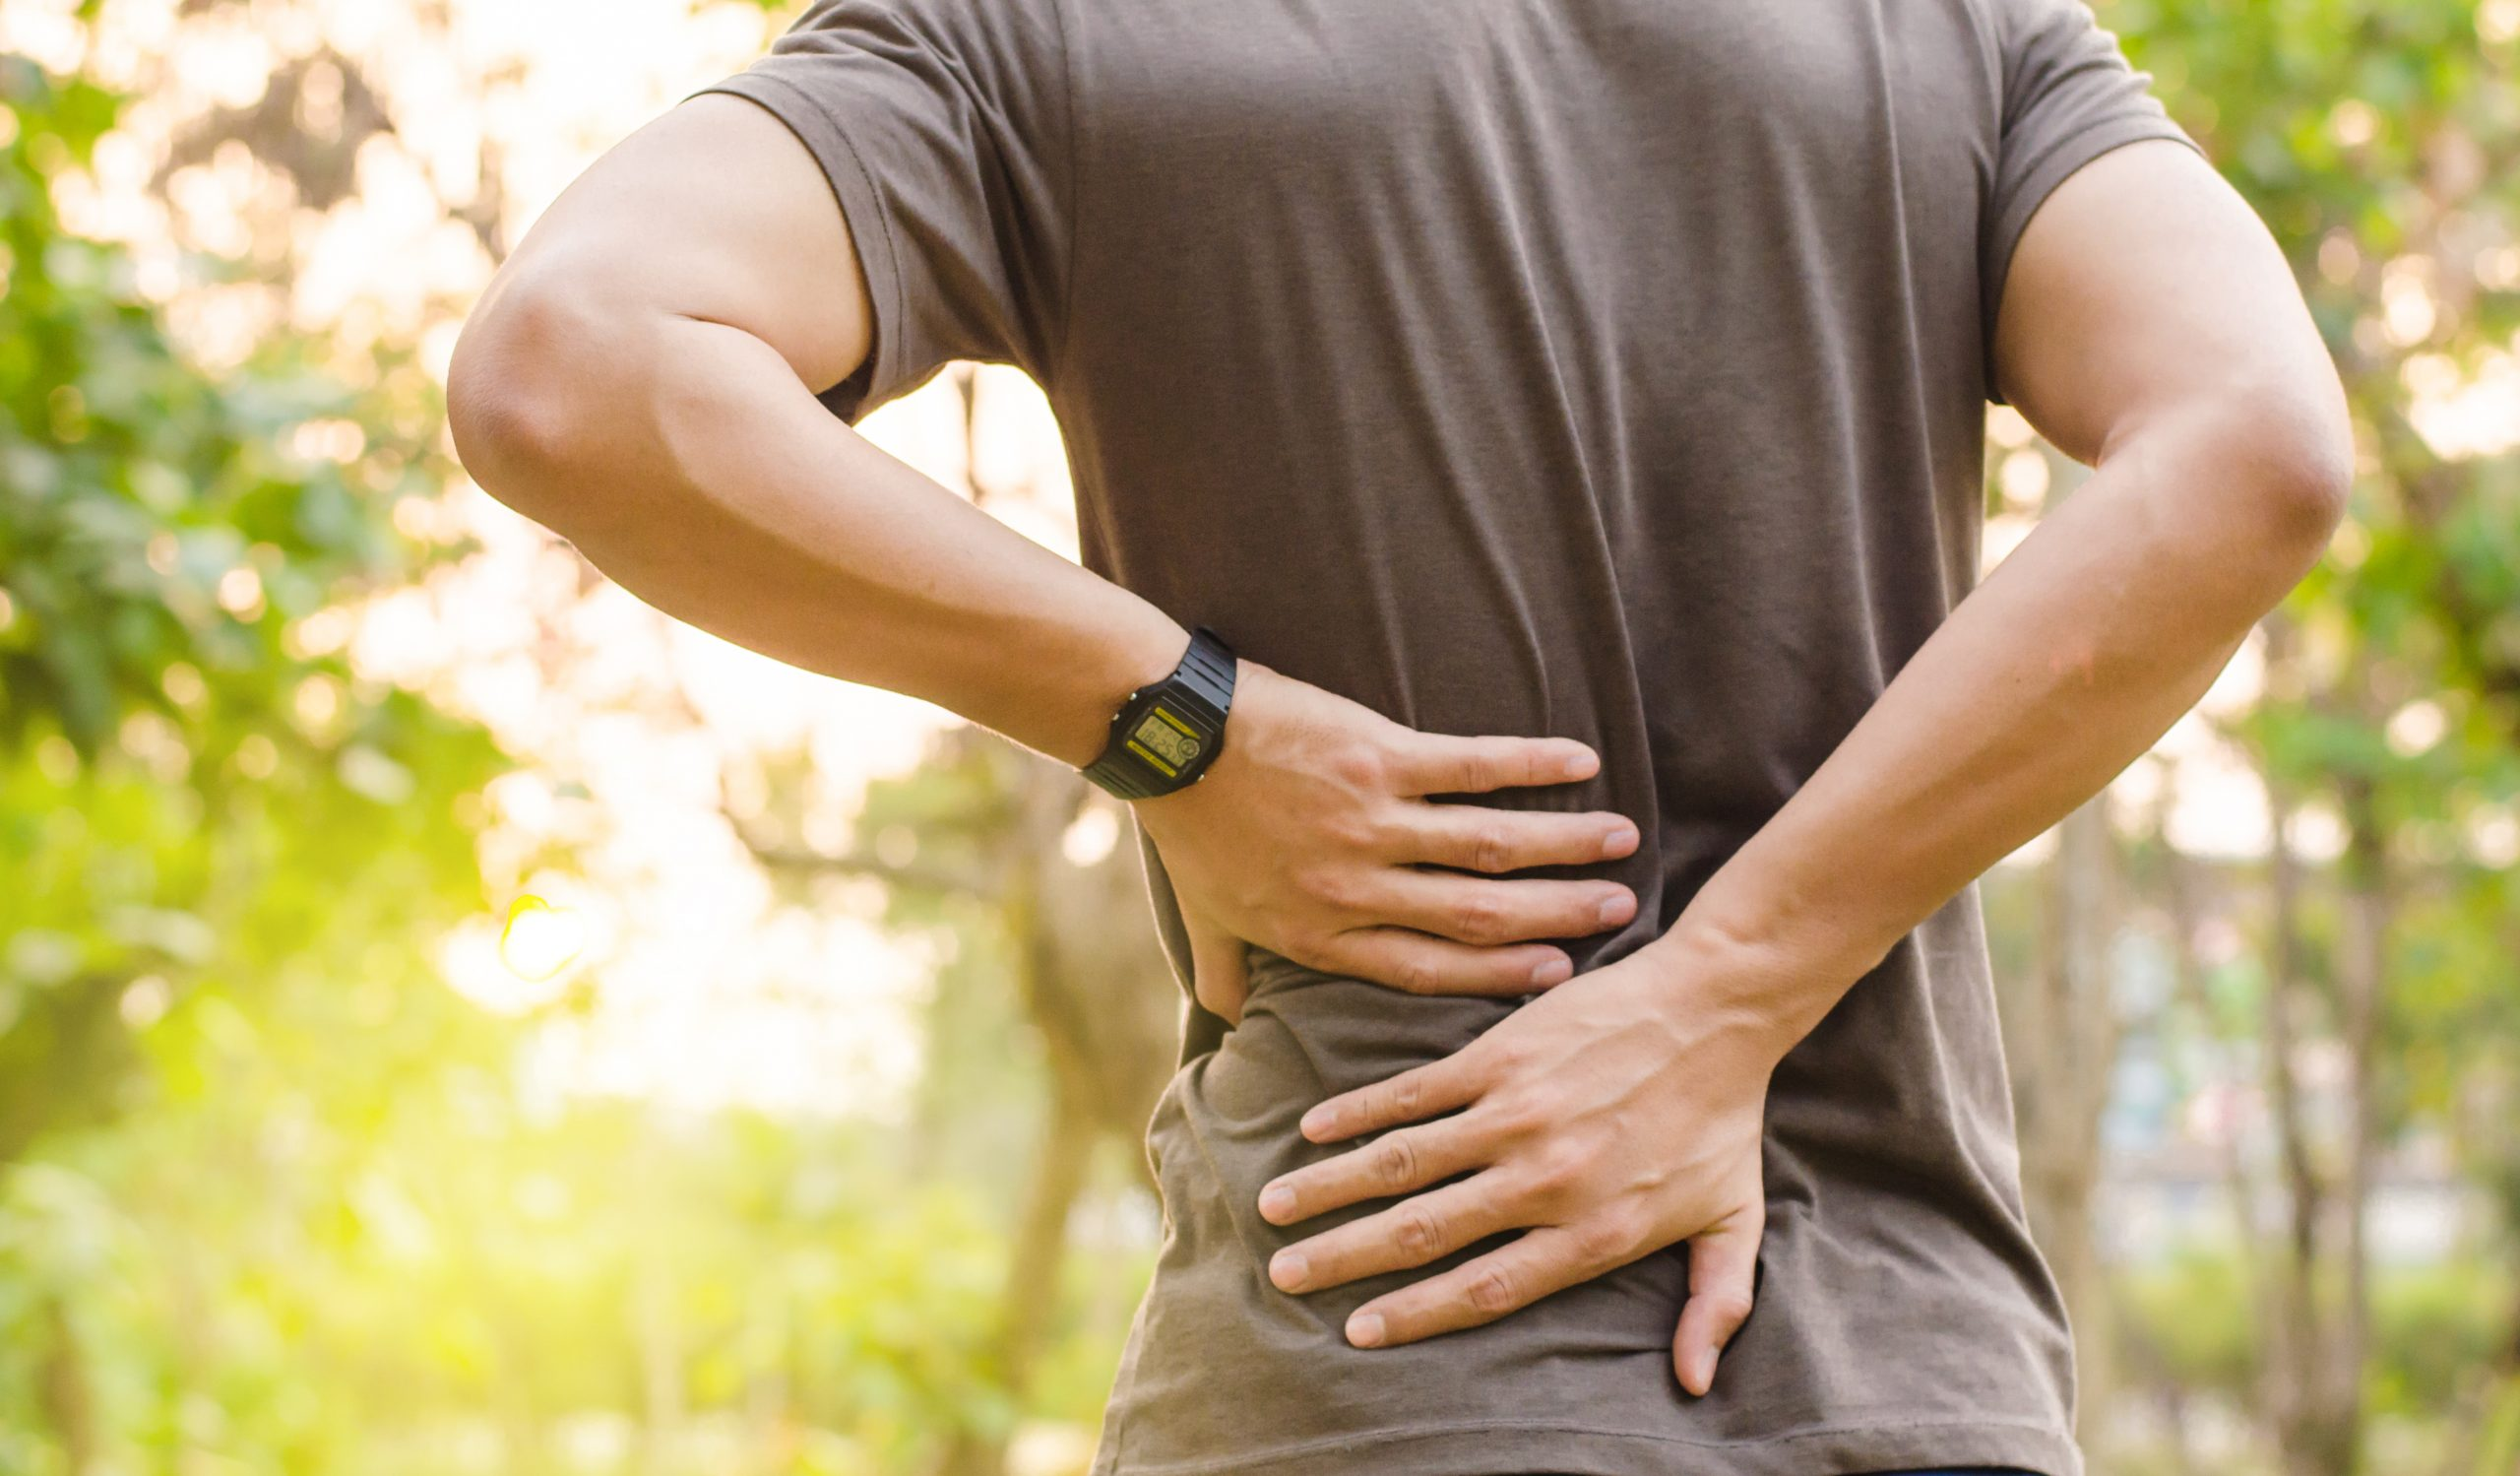 7 simple ways to relieve back pain